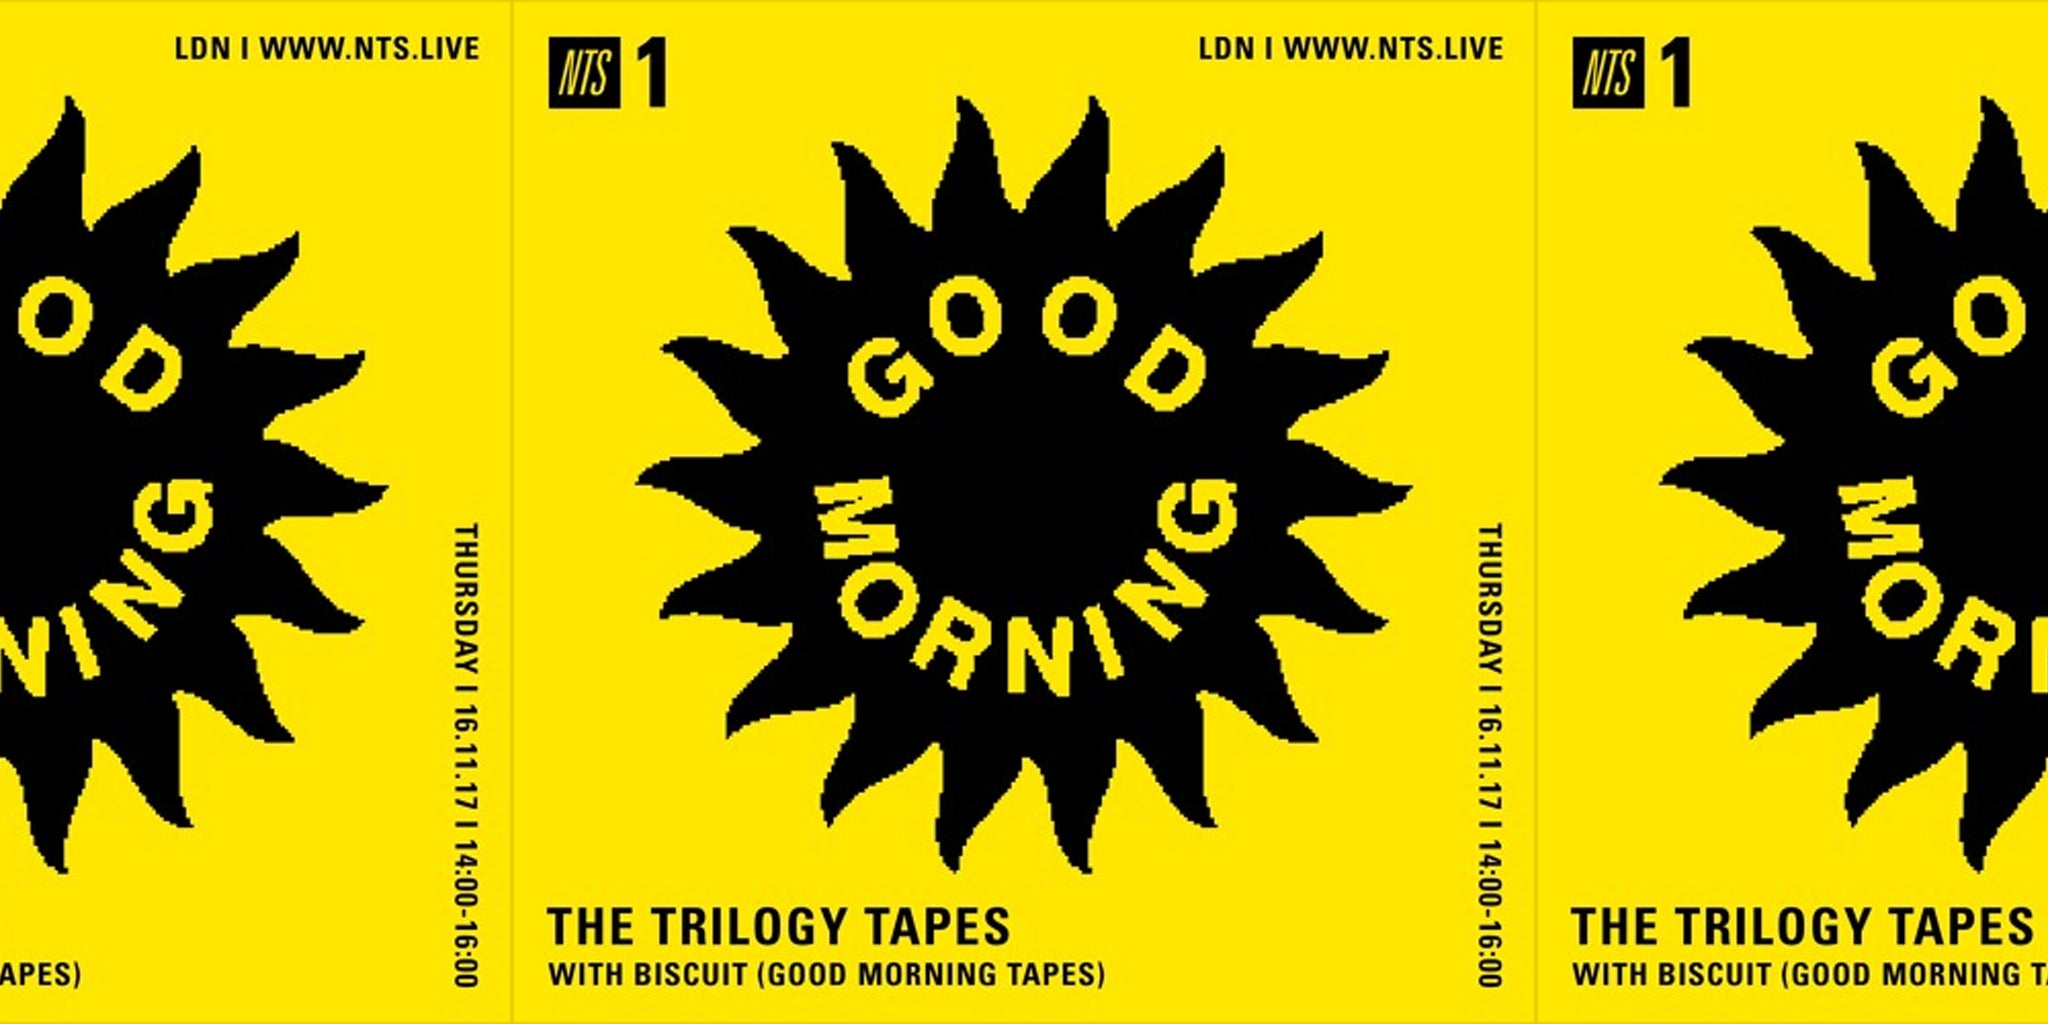 TTT NTS 16.11.17 – Biscuit (Good Morning Tapes)